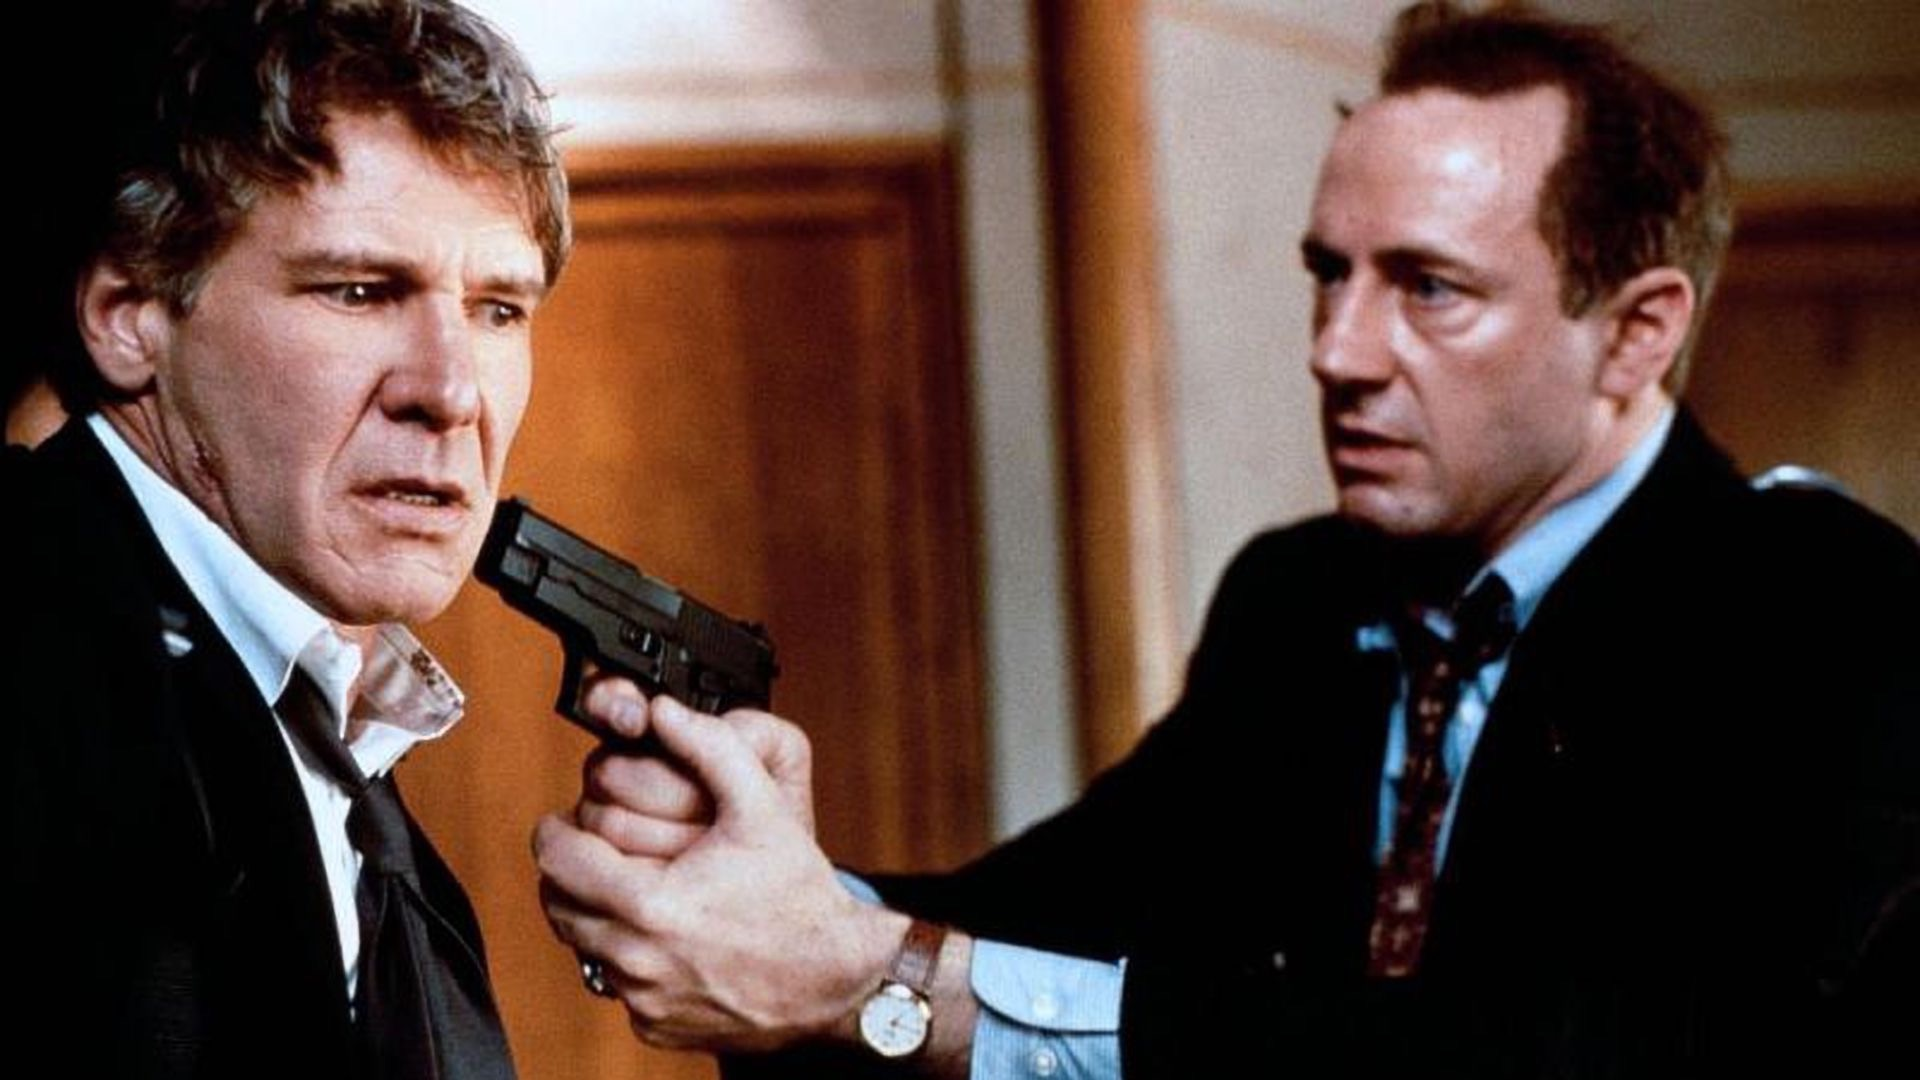 Xander Berkeley and Harrison Ford in Air Force One.